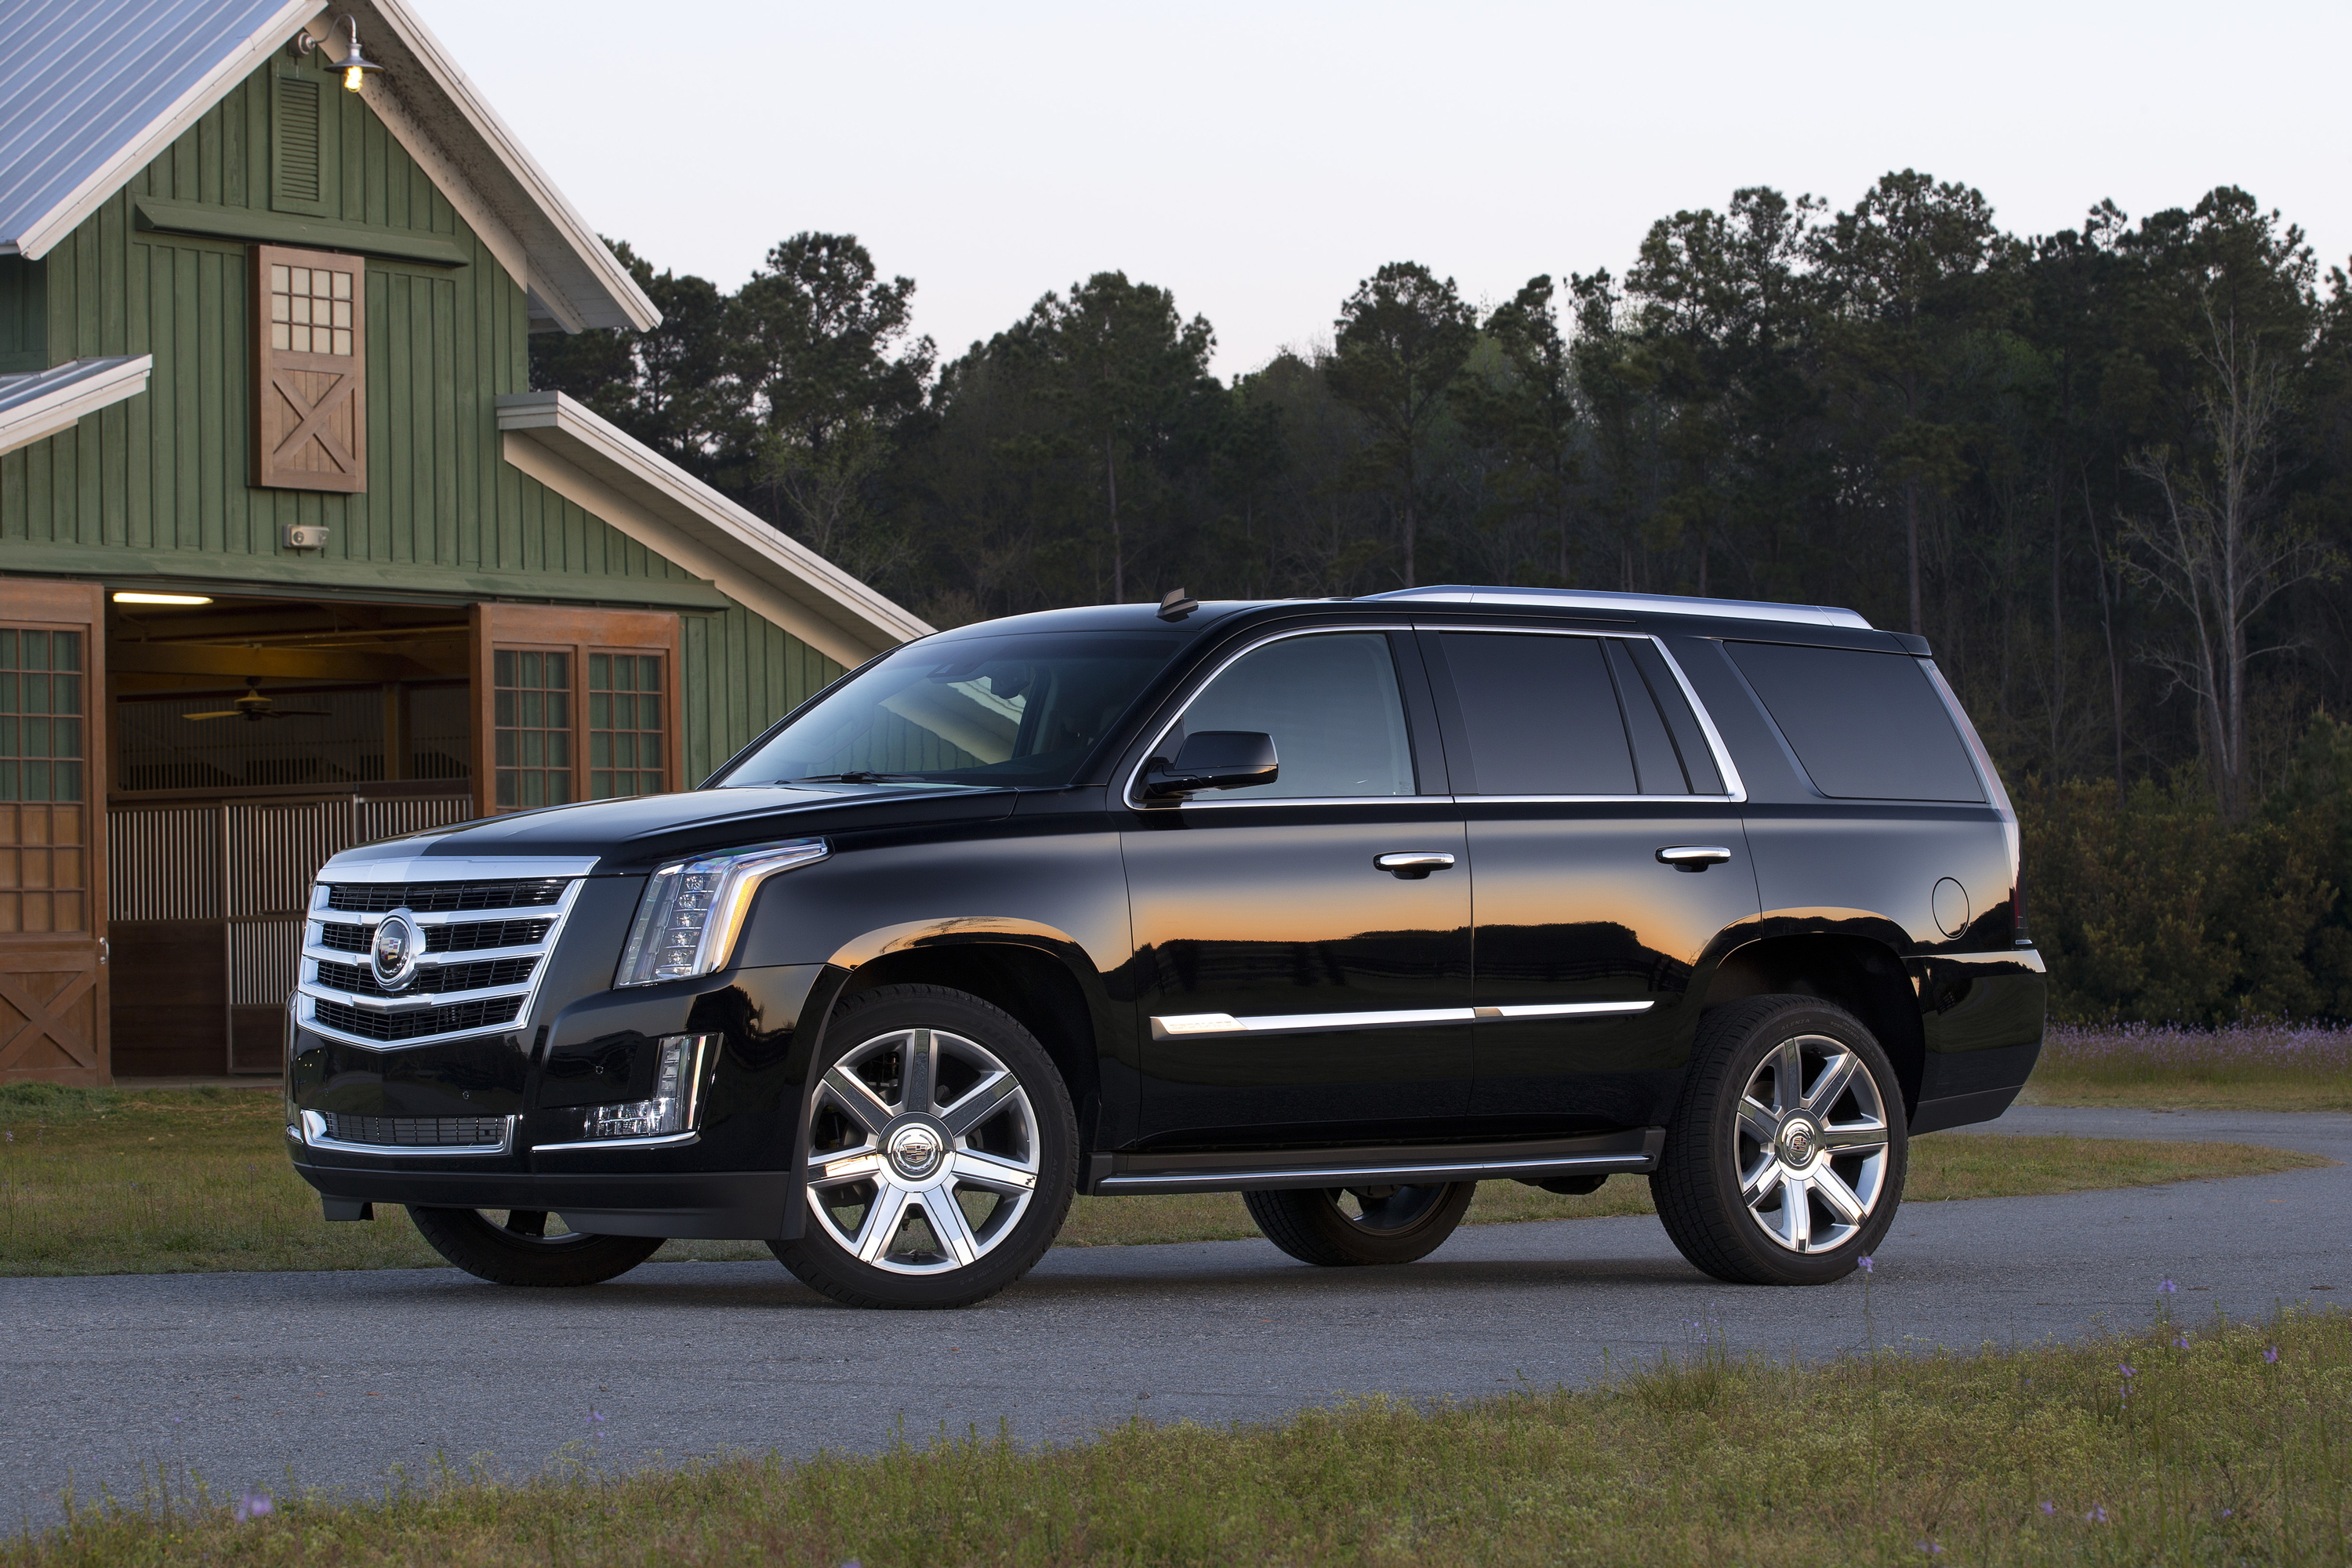 esv new defines craftsmanship all content luxury escalade us pages en news vehicles detail oct overview media cadillac